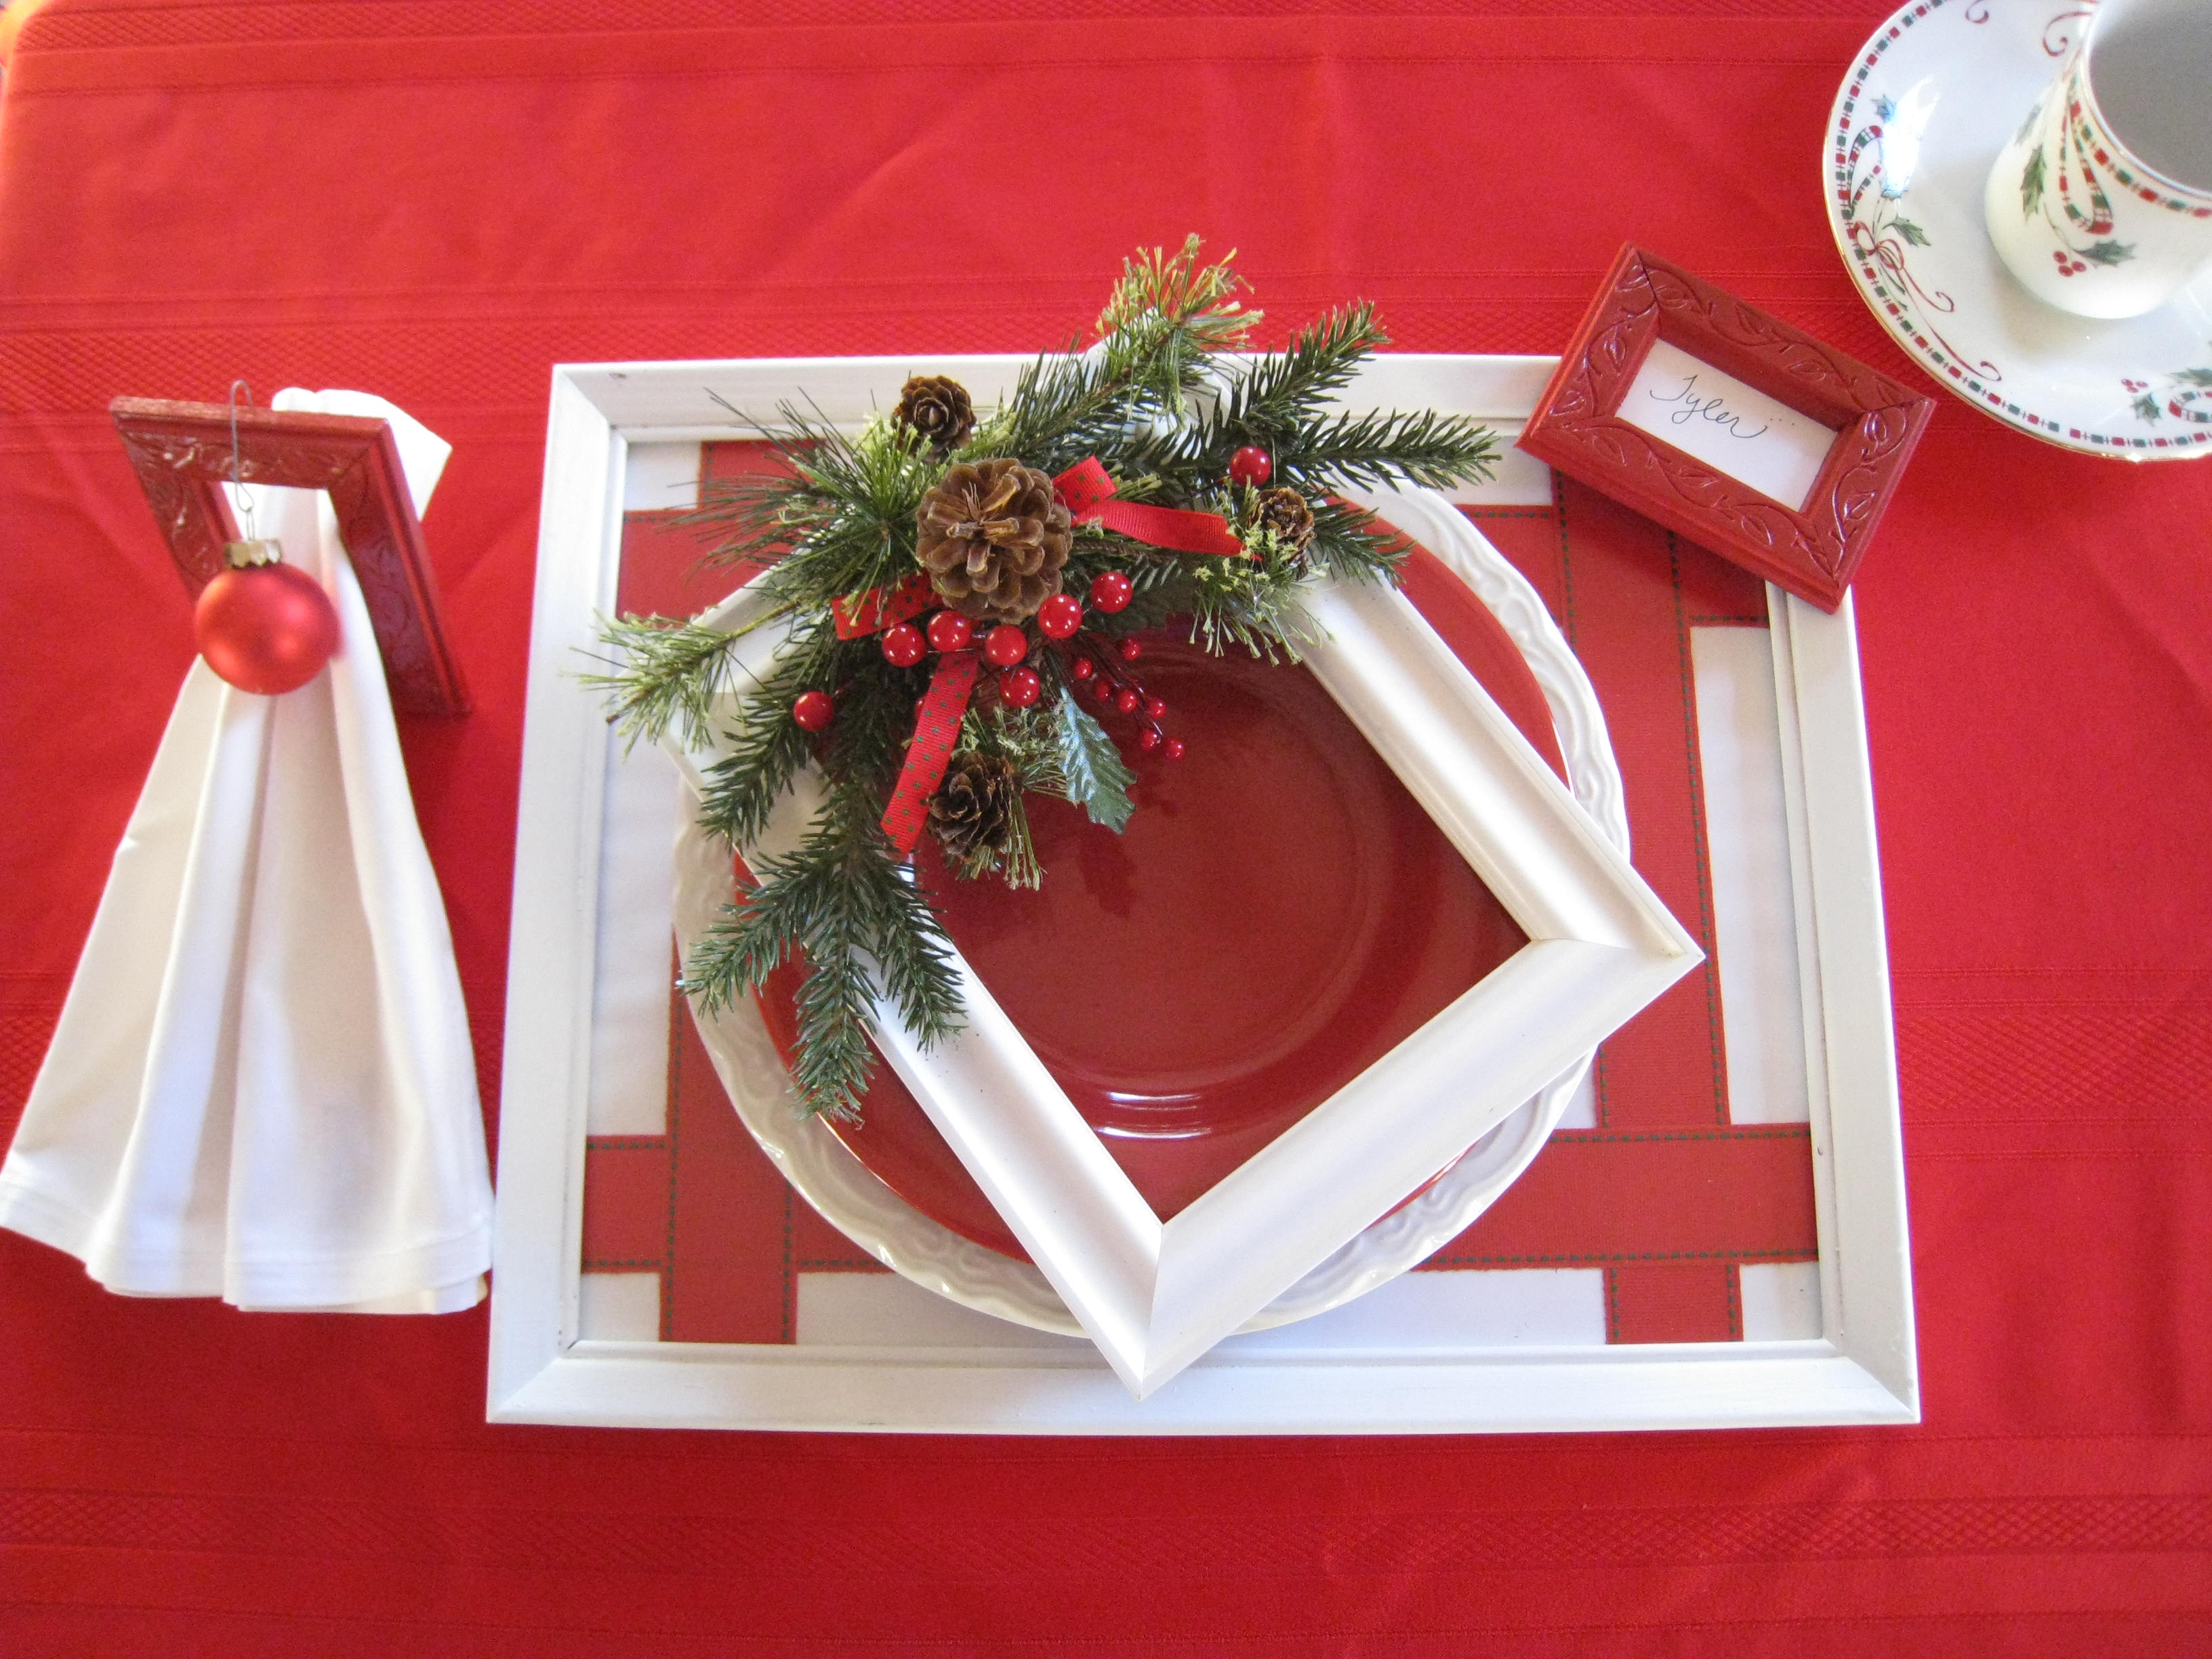 Paint the same frames white and you have a Christmas setting.